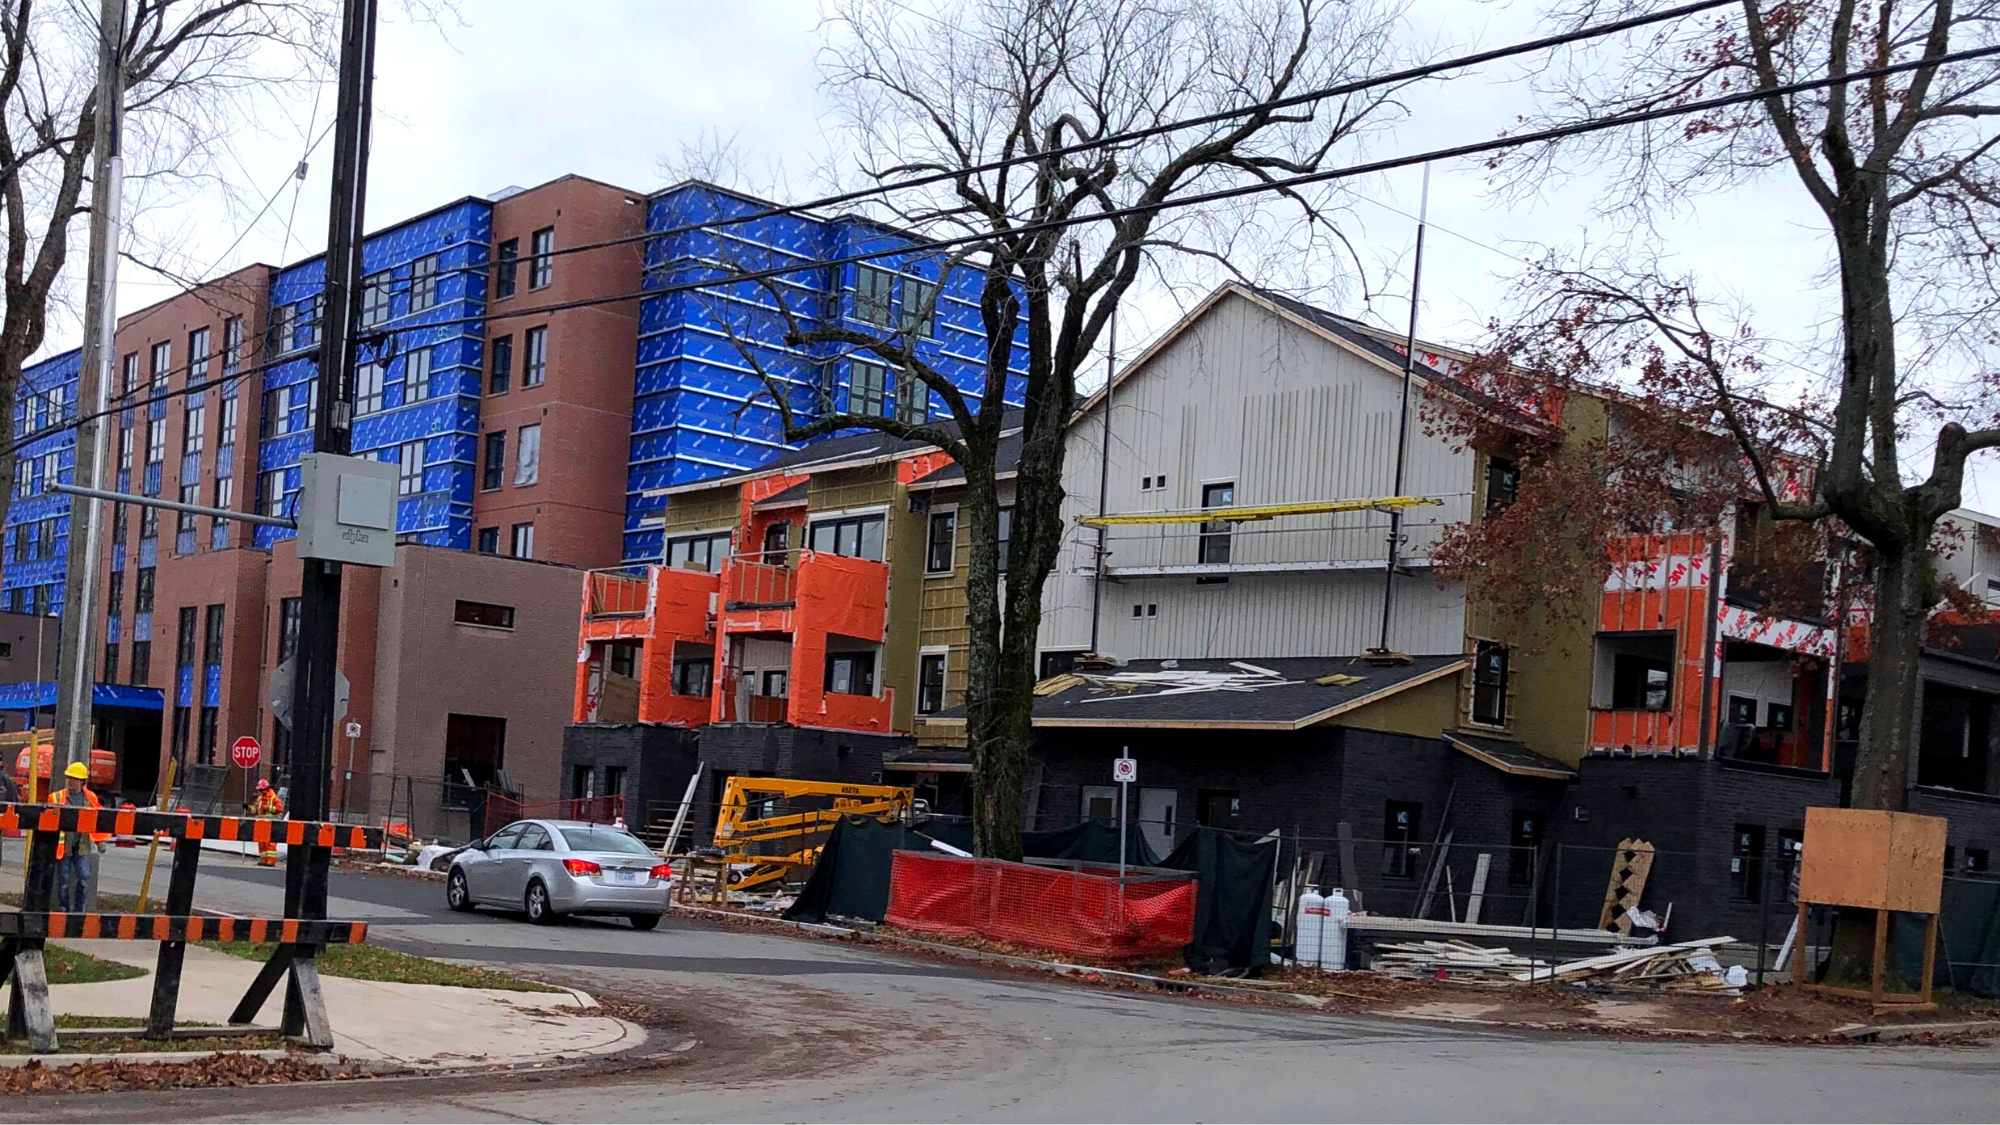 Housing developments on the corner of Preston and Pepperell streets in Halifax.